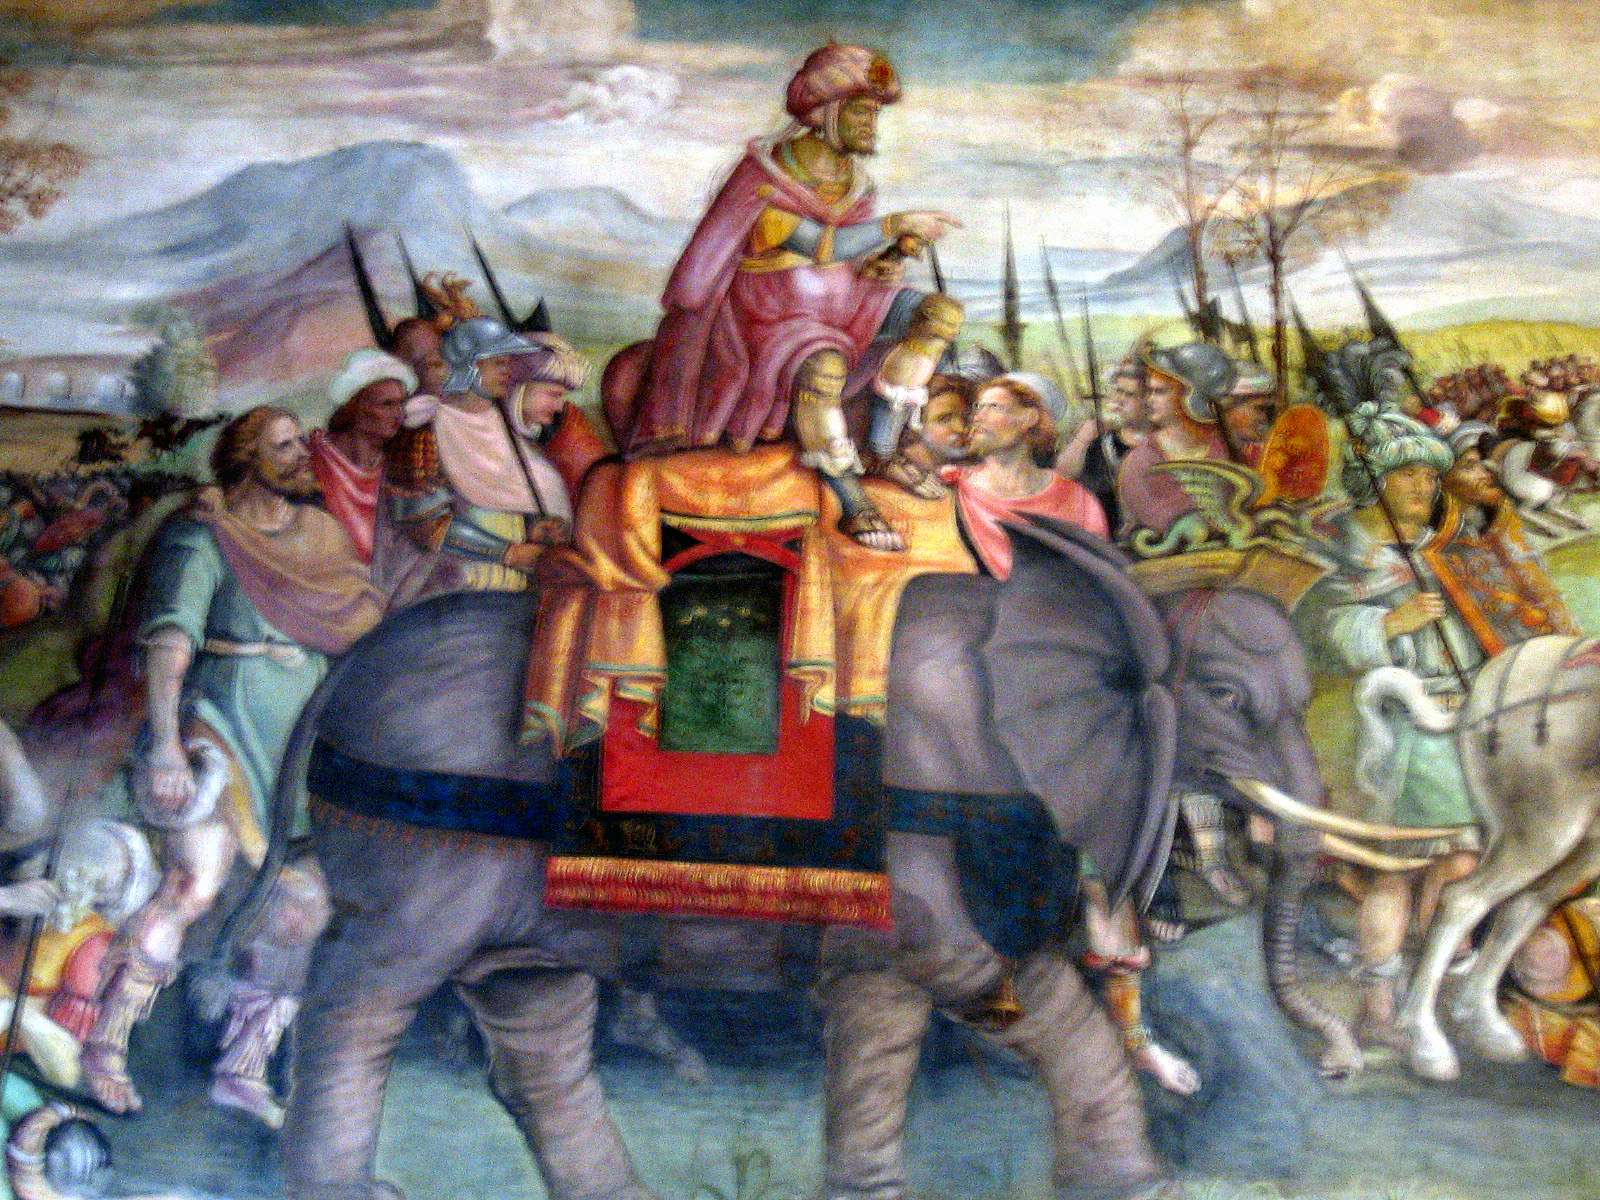 Hannibal's celebrated feat in crossing the Alps with war elephants passed into European legend: detail of a fresco by Jacopo Ripanda, ca. 1510, Capitoline Museums, Rome.